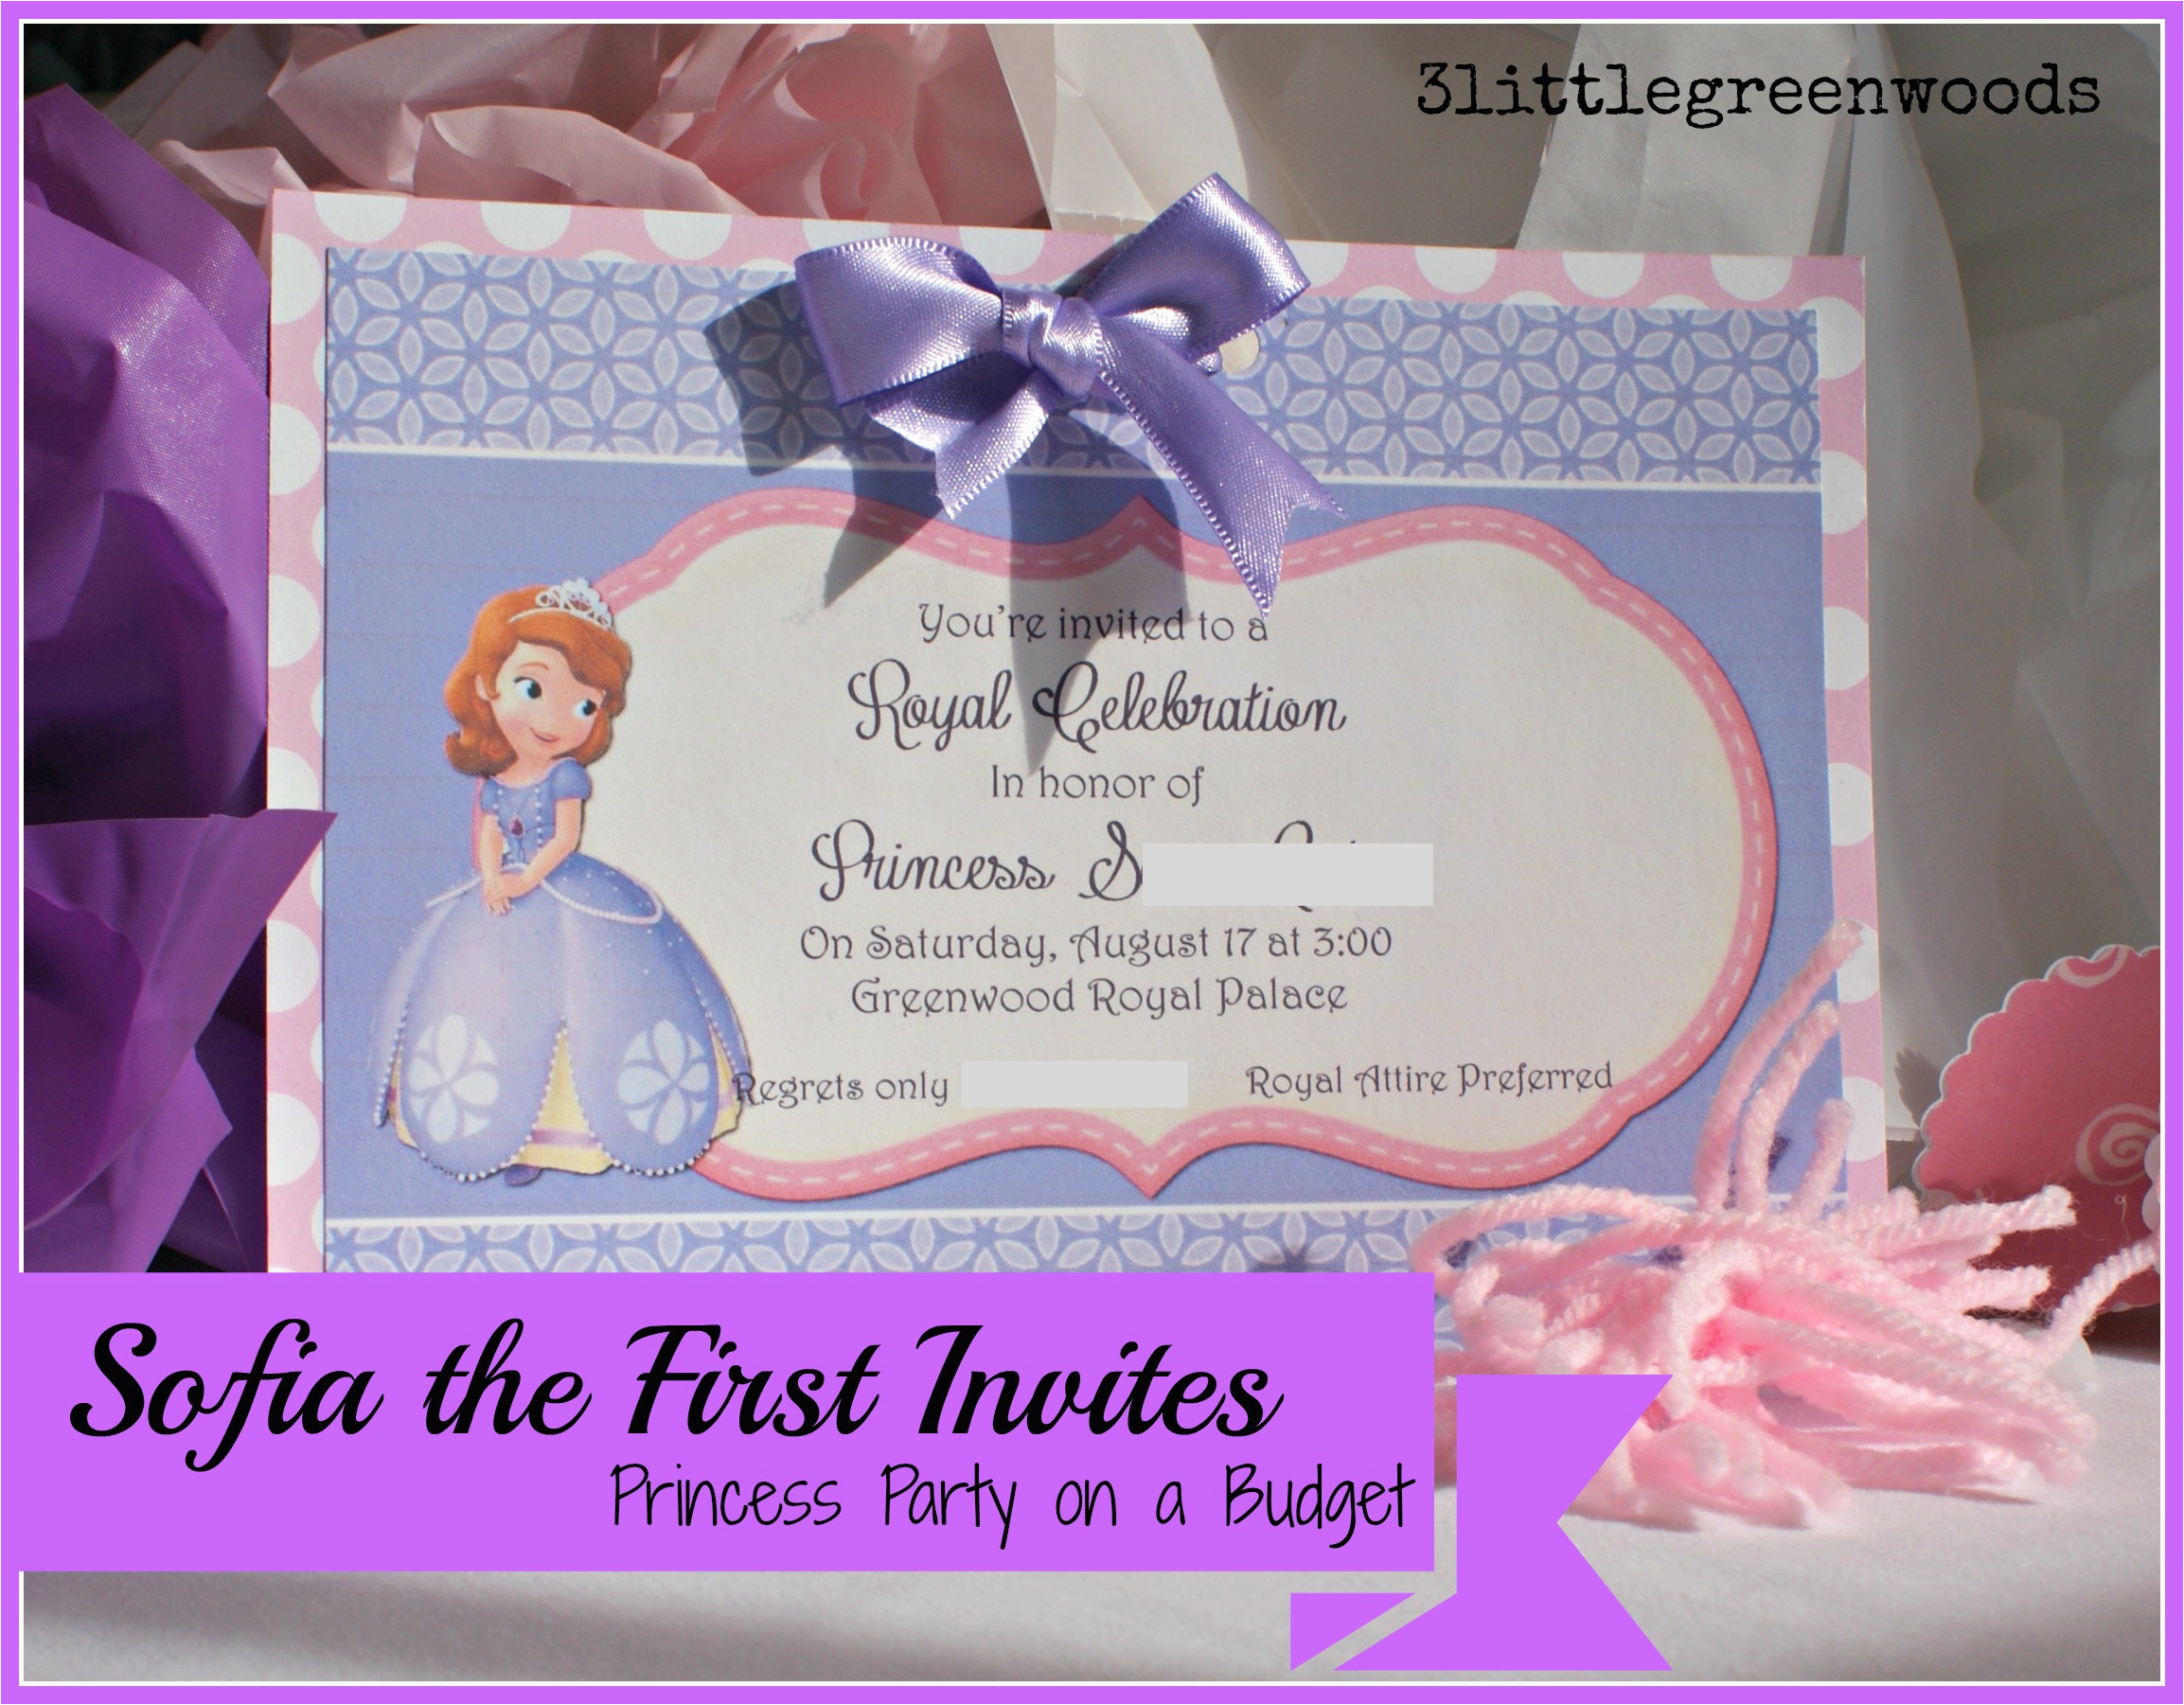 sofia the first birthday invites princess party on a budget